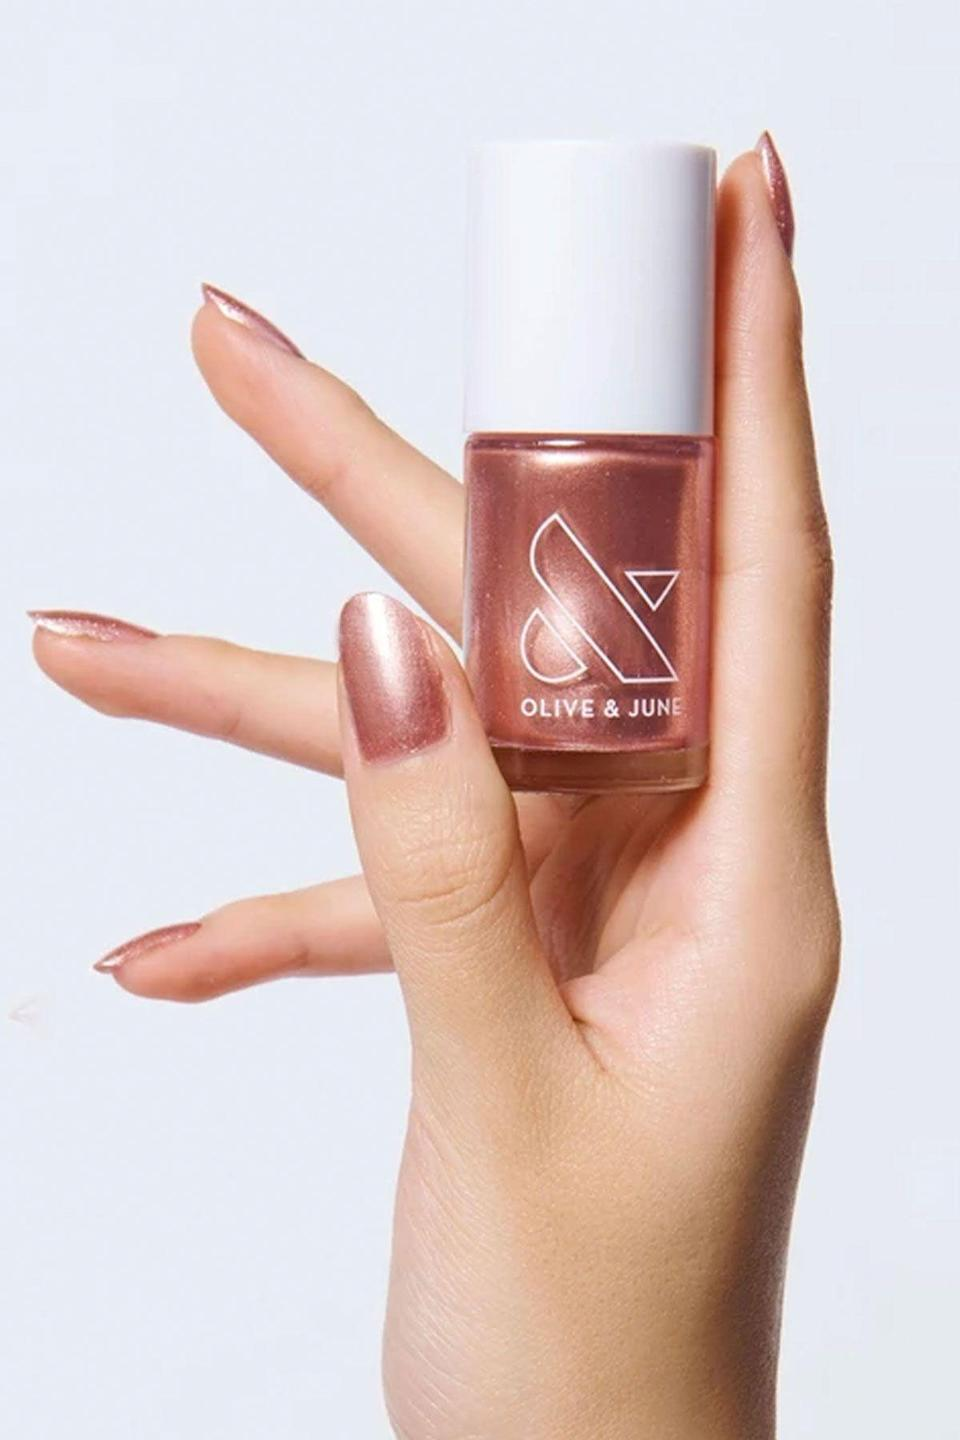 """<p><strong>OPI</strong></p><p>oliveandjune.com</p><p><strong>$8.00</strong></p><p><a href=""""https://go.redirectingat.com?id=74968X1596630&url=https%3A%2F%2Foliveandjune.com%2Fcollections%2Fnail-polish%2Fproducts%2Fojsm&sref=https%3A%2F%2Fwww.seventeen.com%2Fbeauty%2Fnails%2Fg25243032%2Fwinter-nail-polish-colors%2F"""" rel=""""nofollow noopener"""" target=""""_blank"""" data-ylk=""""slk:Shop Now"""" class=""""link rapid-noclick-resp"""">Shop Now</a></p><p>Nothing says holiday party like a glittery metallic. This gorge rose gold will have everyone asking where you get your nails done.</p>"""